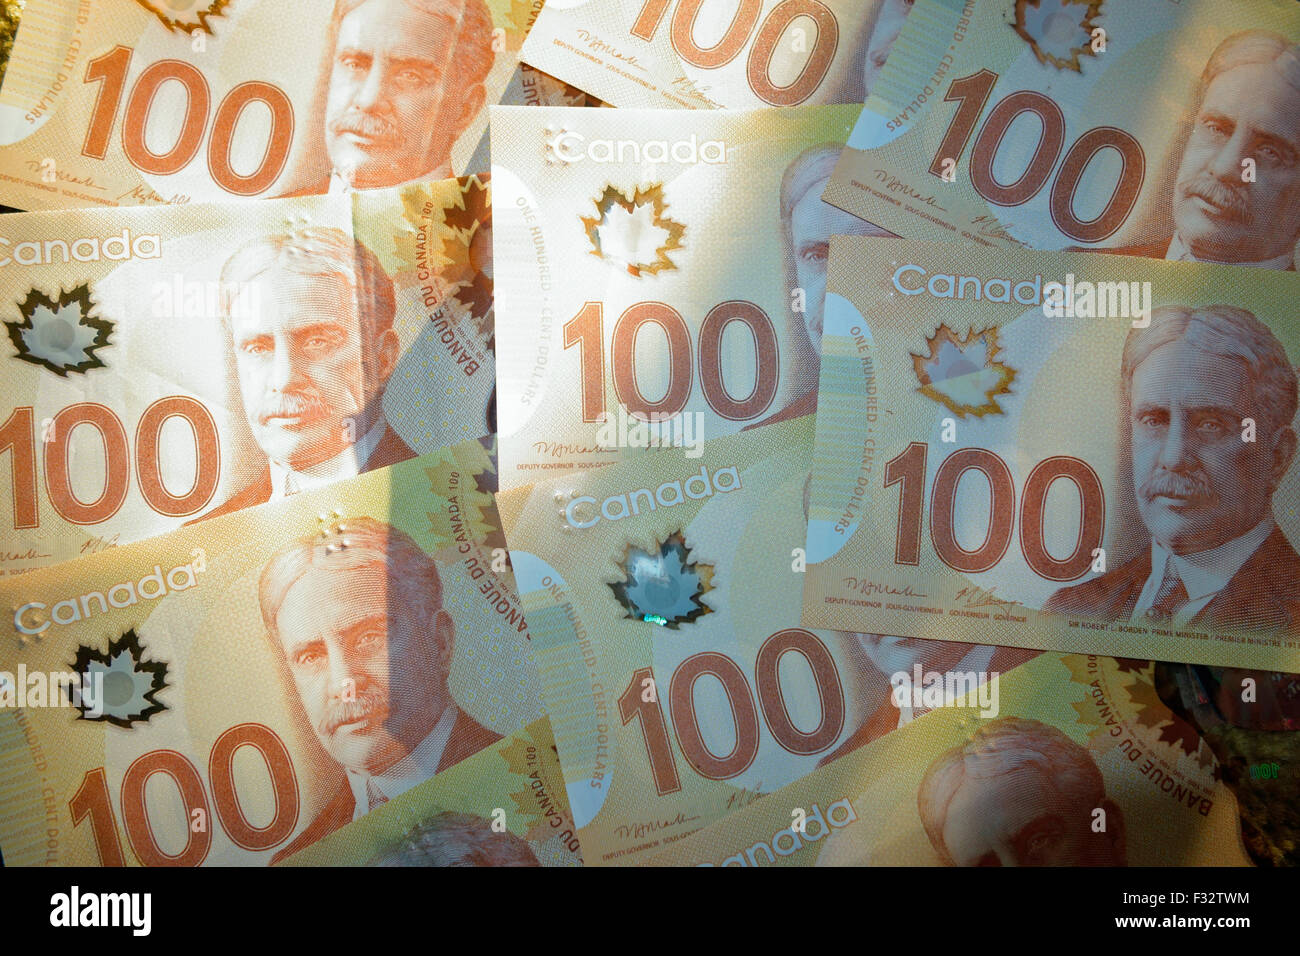 A collection of new Canadian 100 dollar bank note bills money - Stock Image